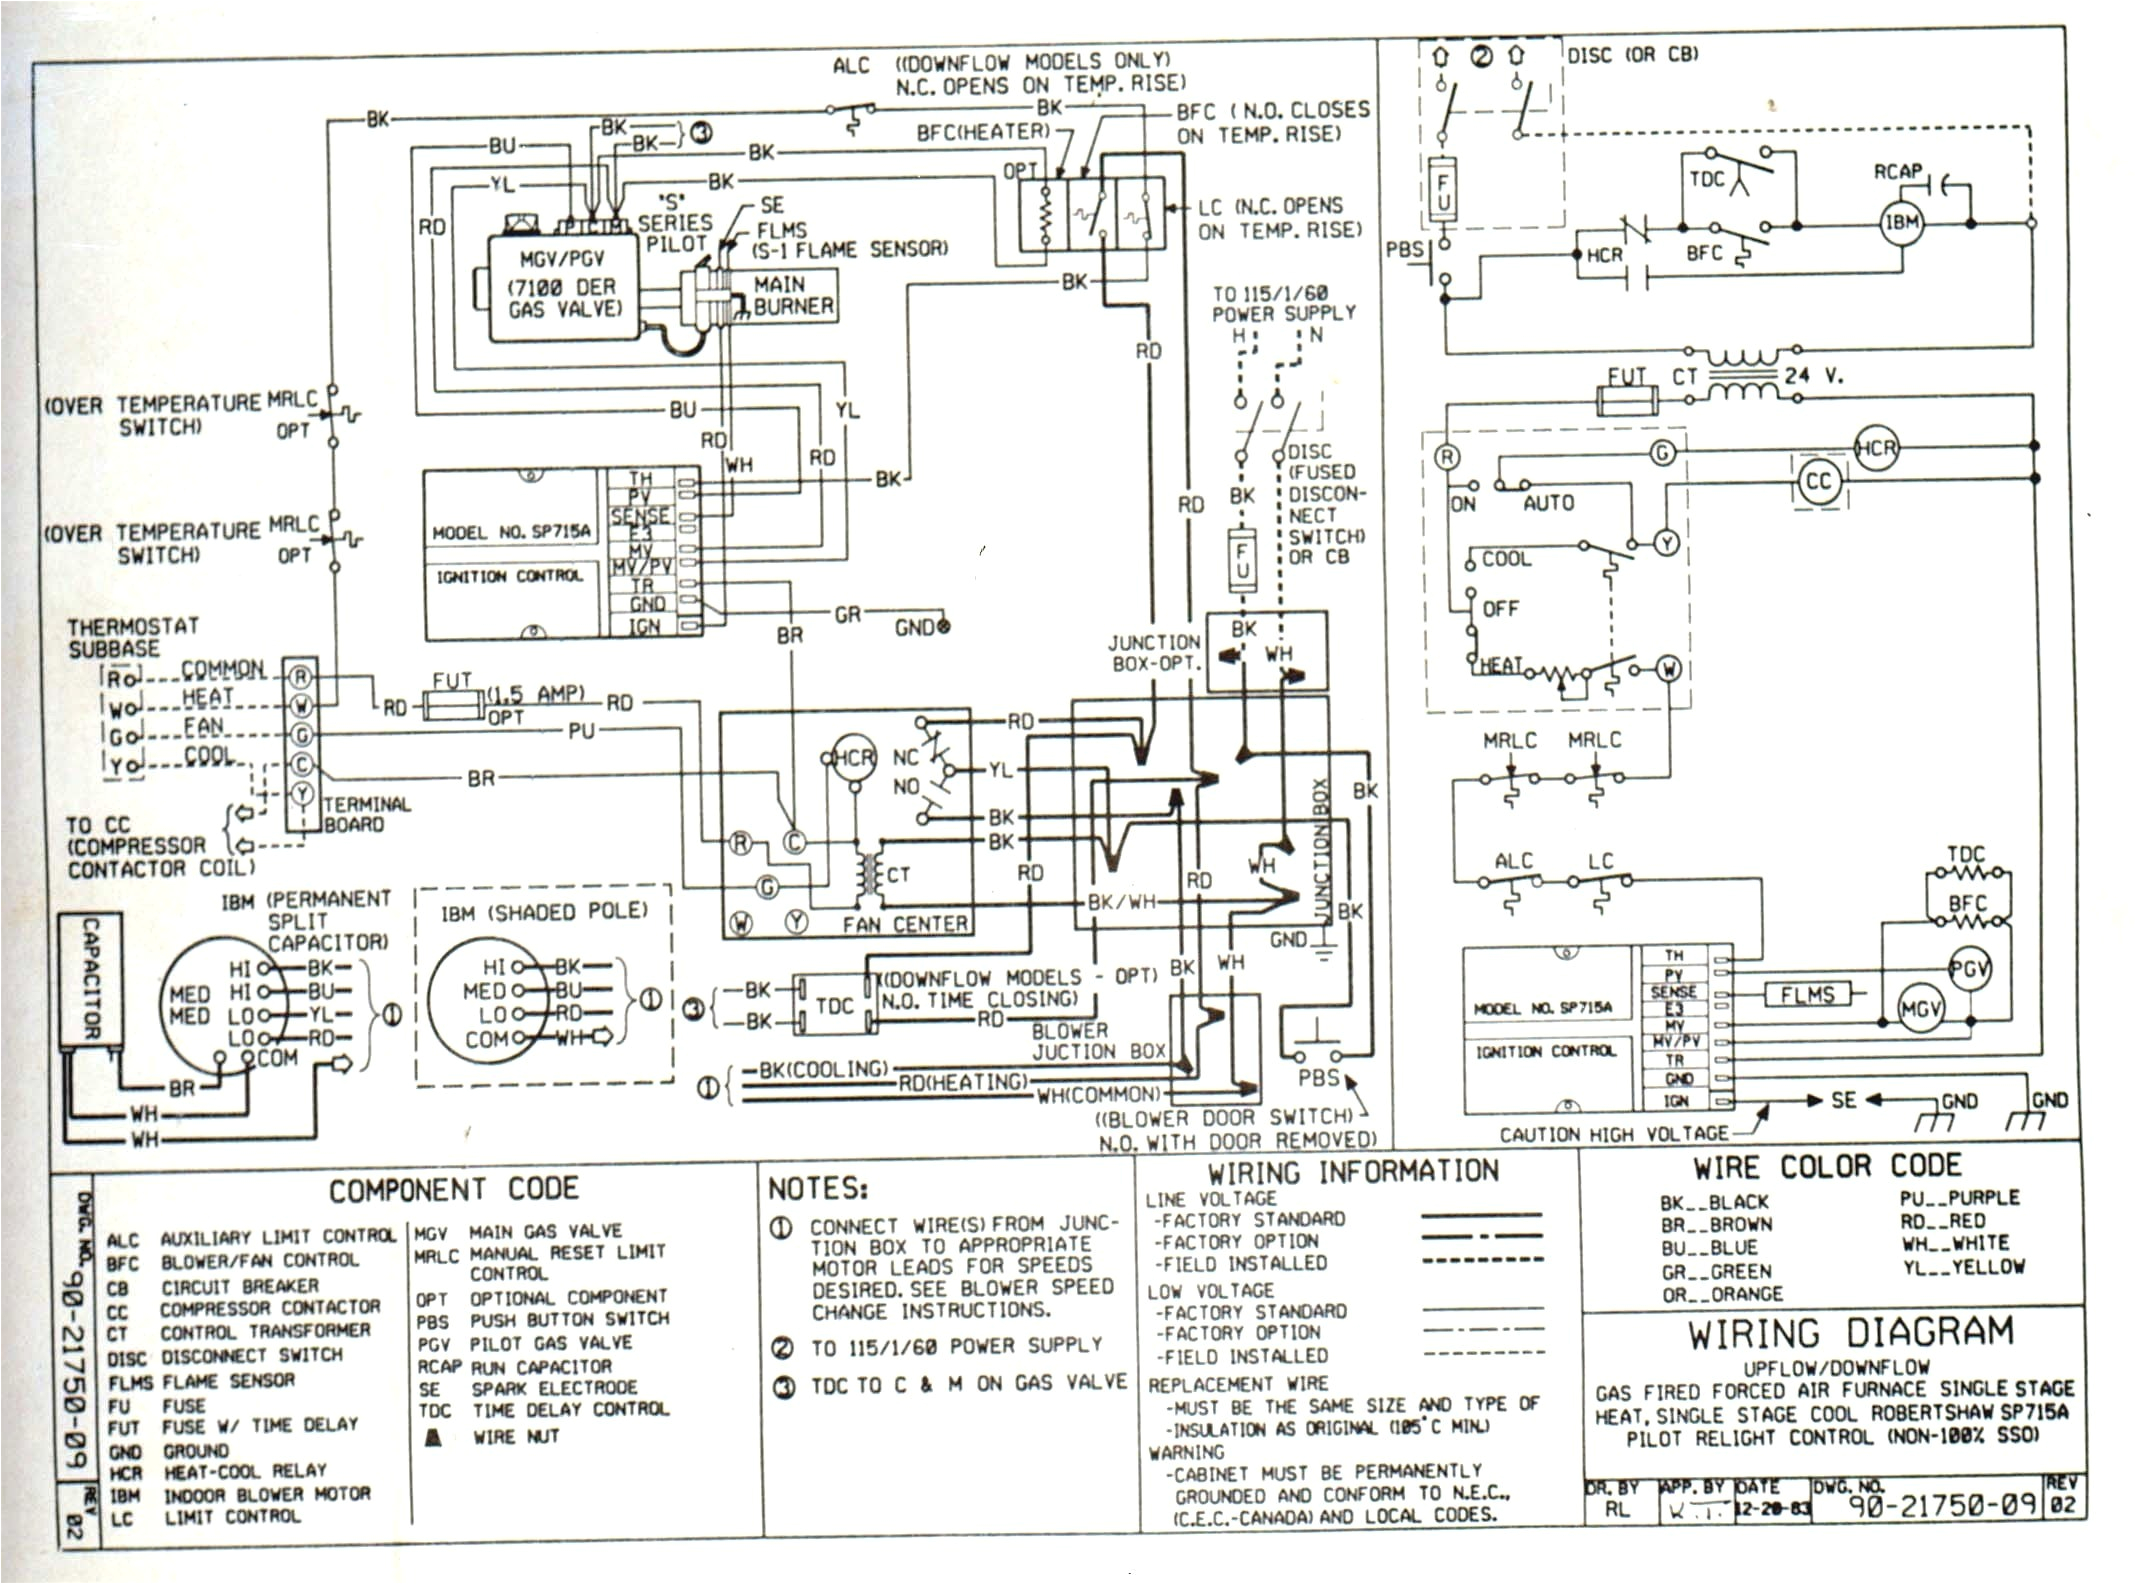 arcoaire air conditioner wiring schmatics air conditioning data arcoaire air conditioner wiring diagram most searched wiring